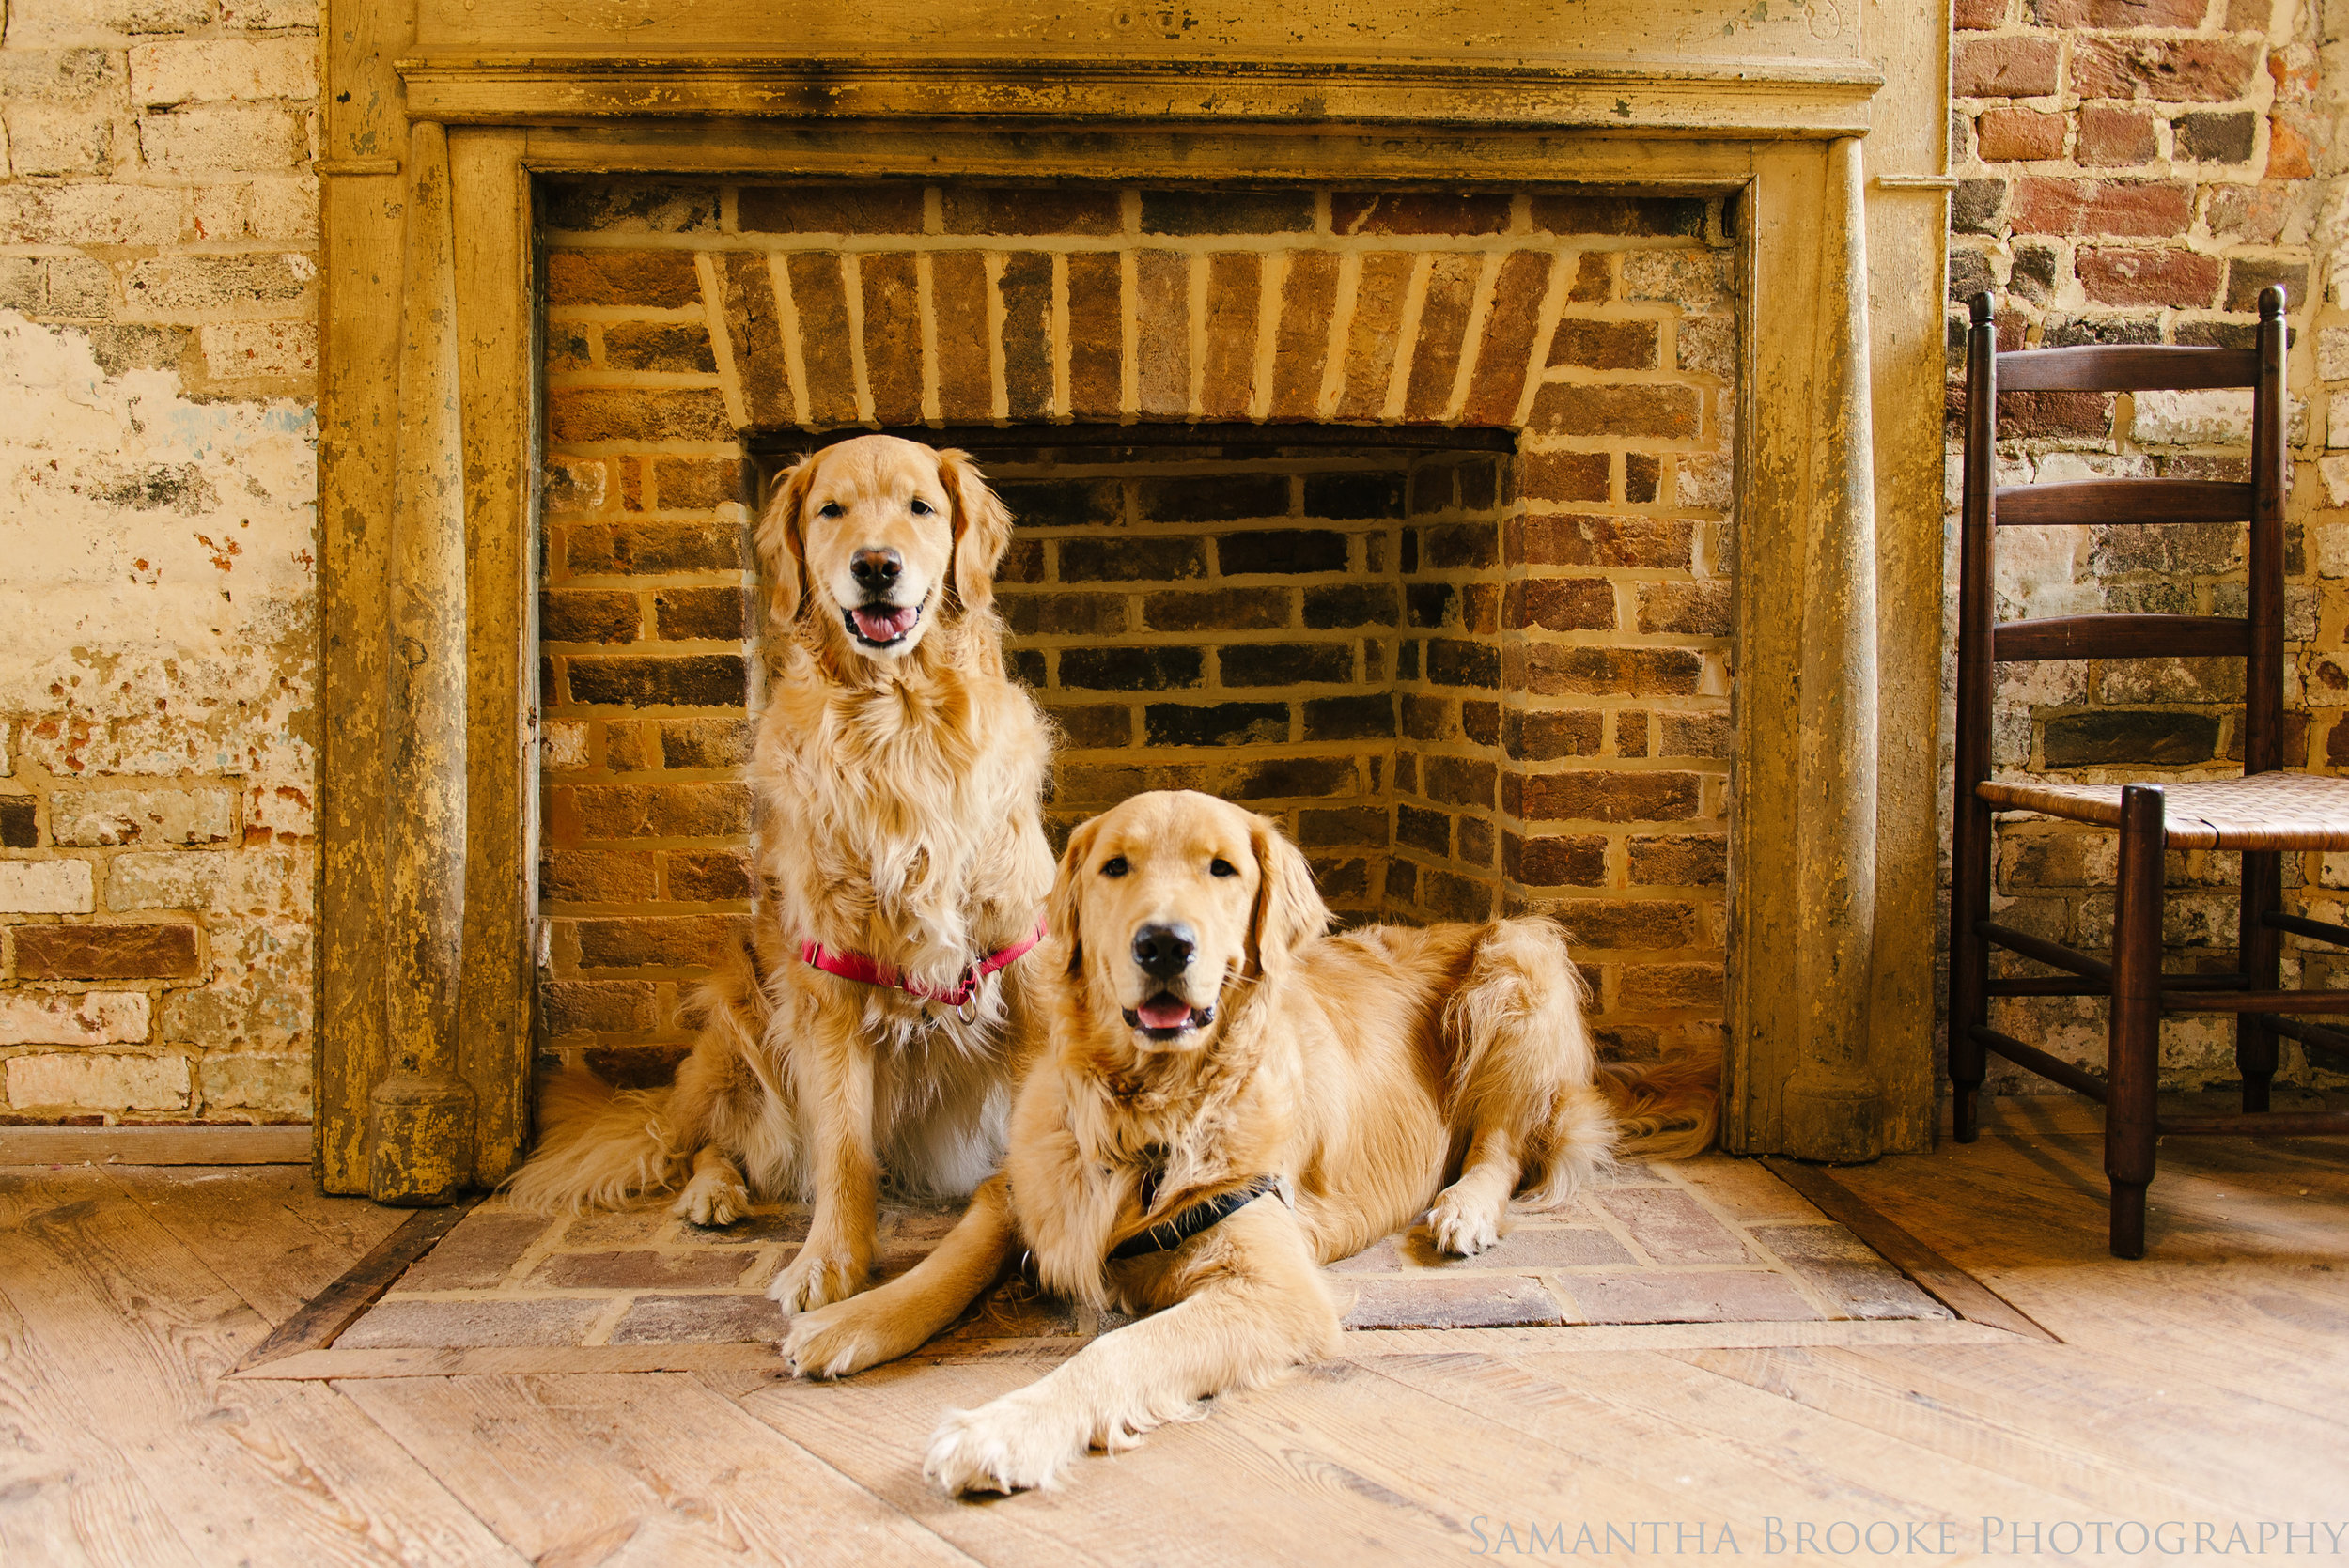 Koa and Aspen sit inside one of the fireplaces at historic Aldie Mill.